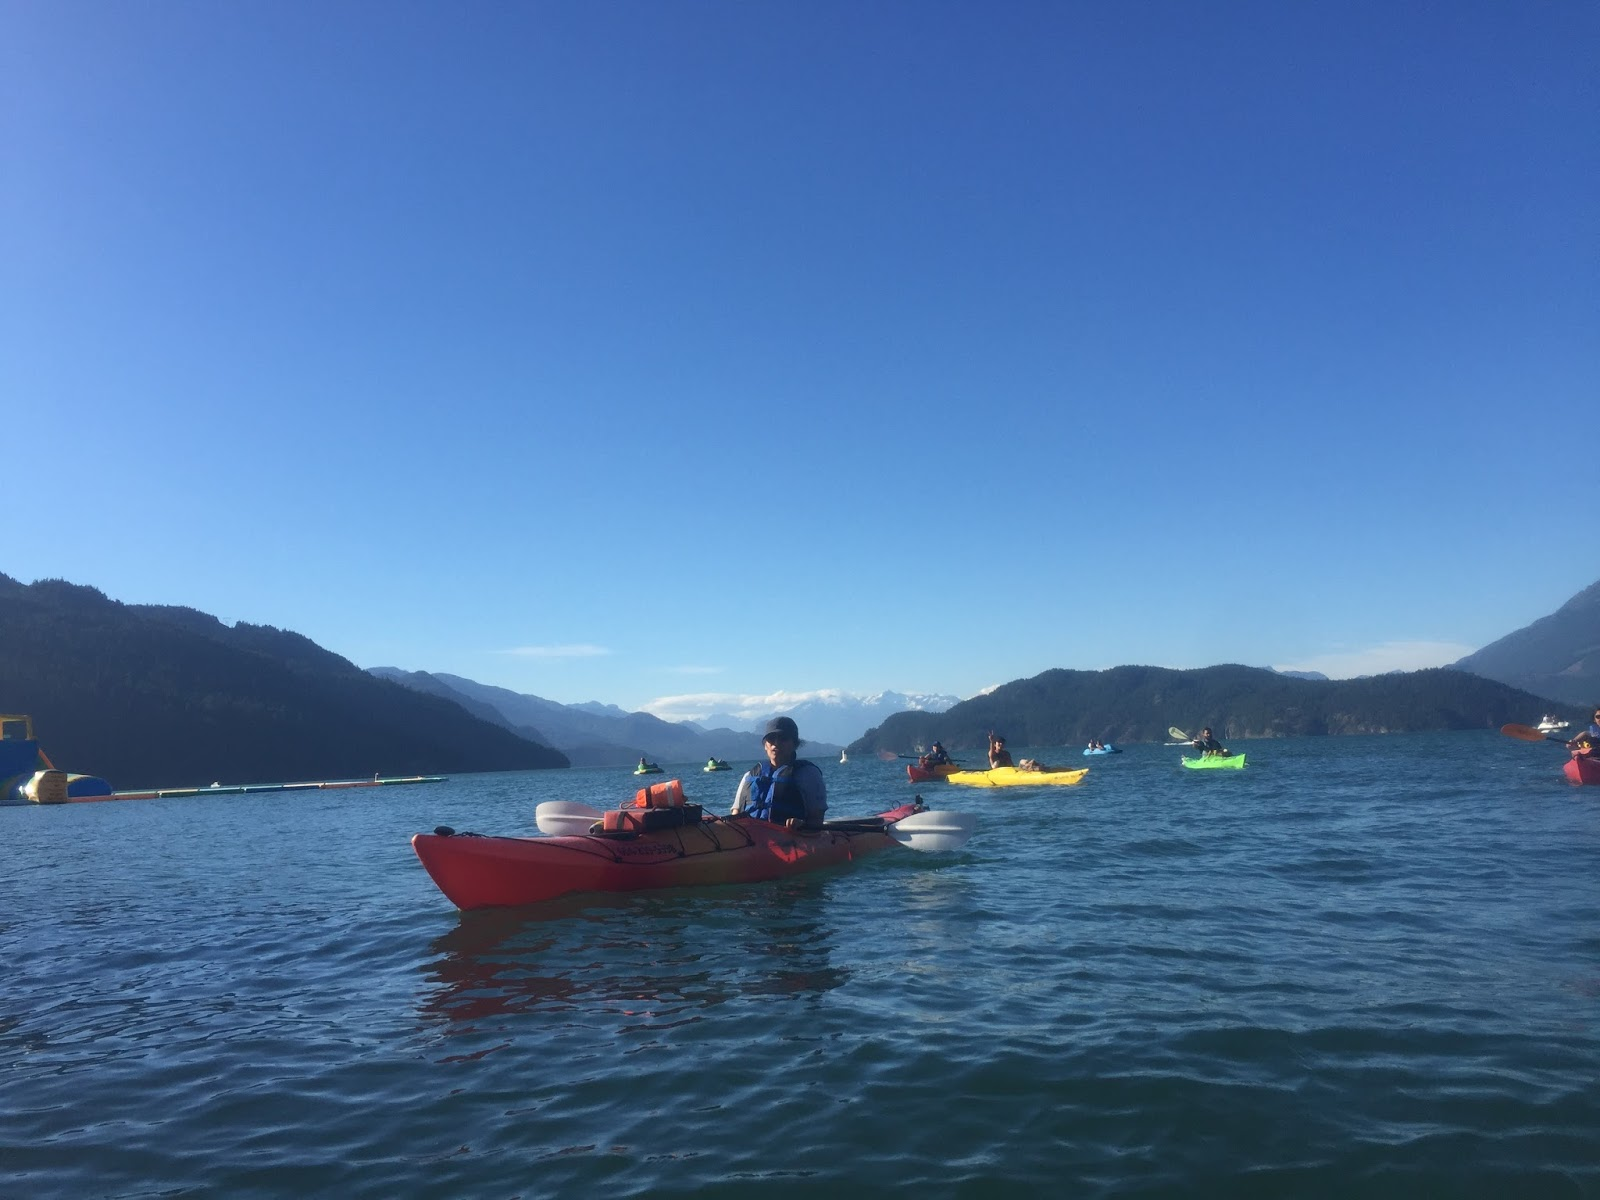 kayaking at harrison hot springs